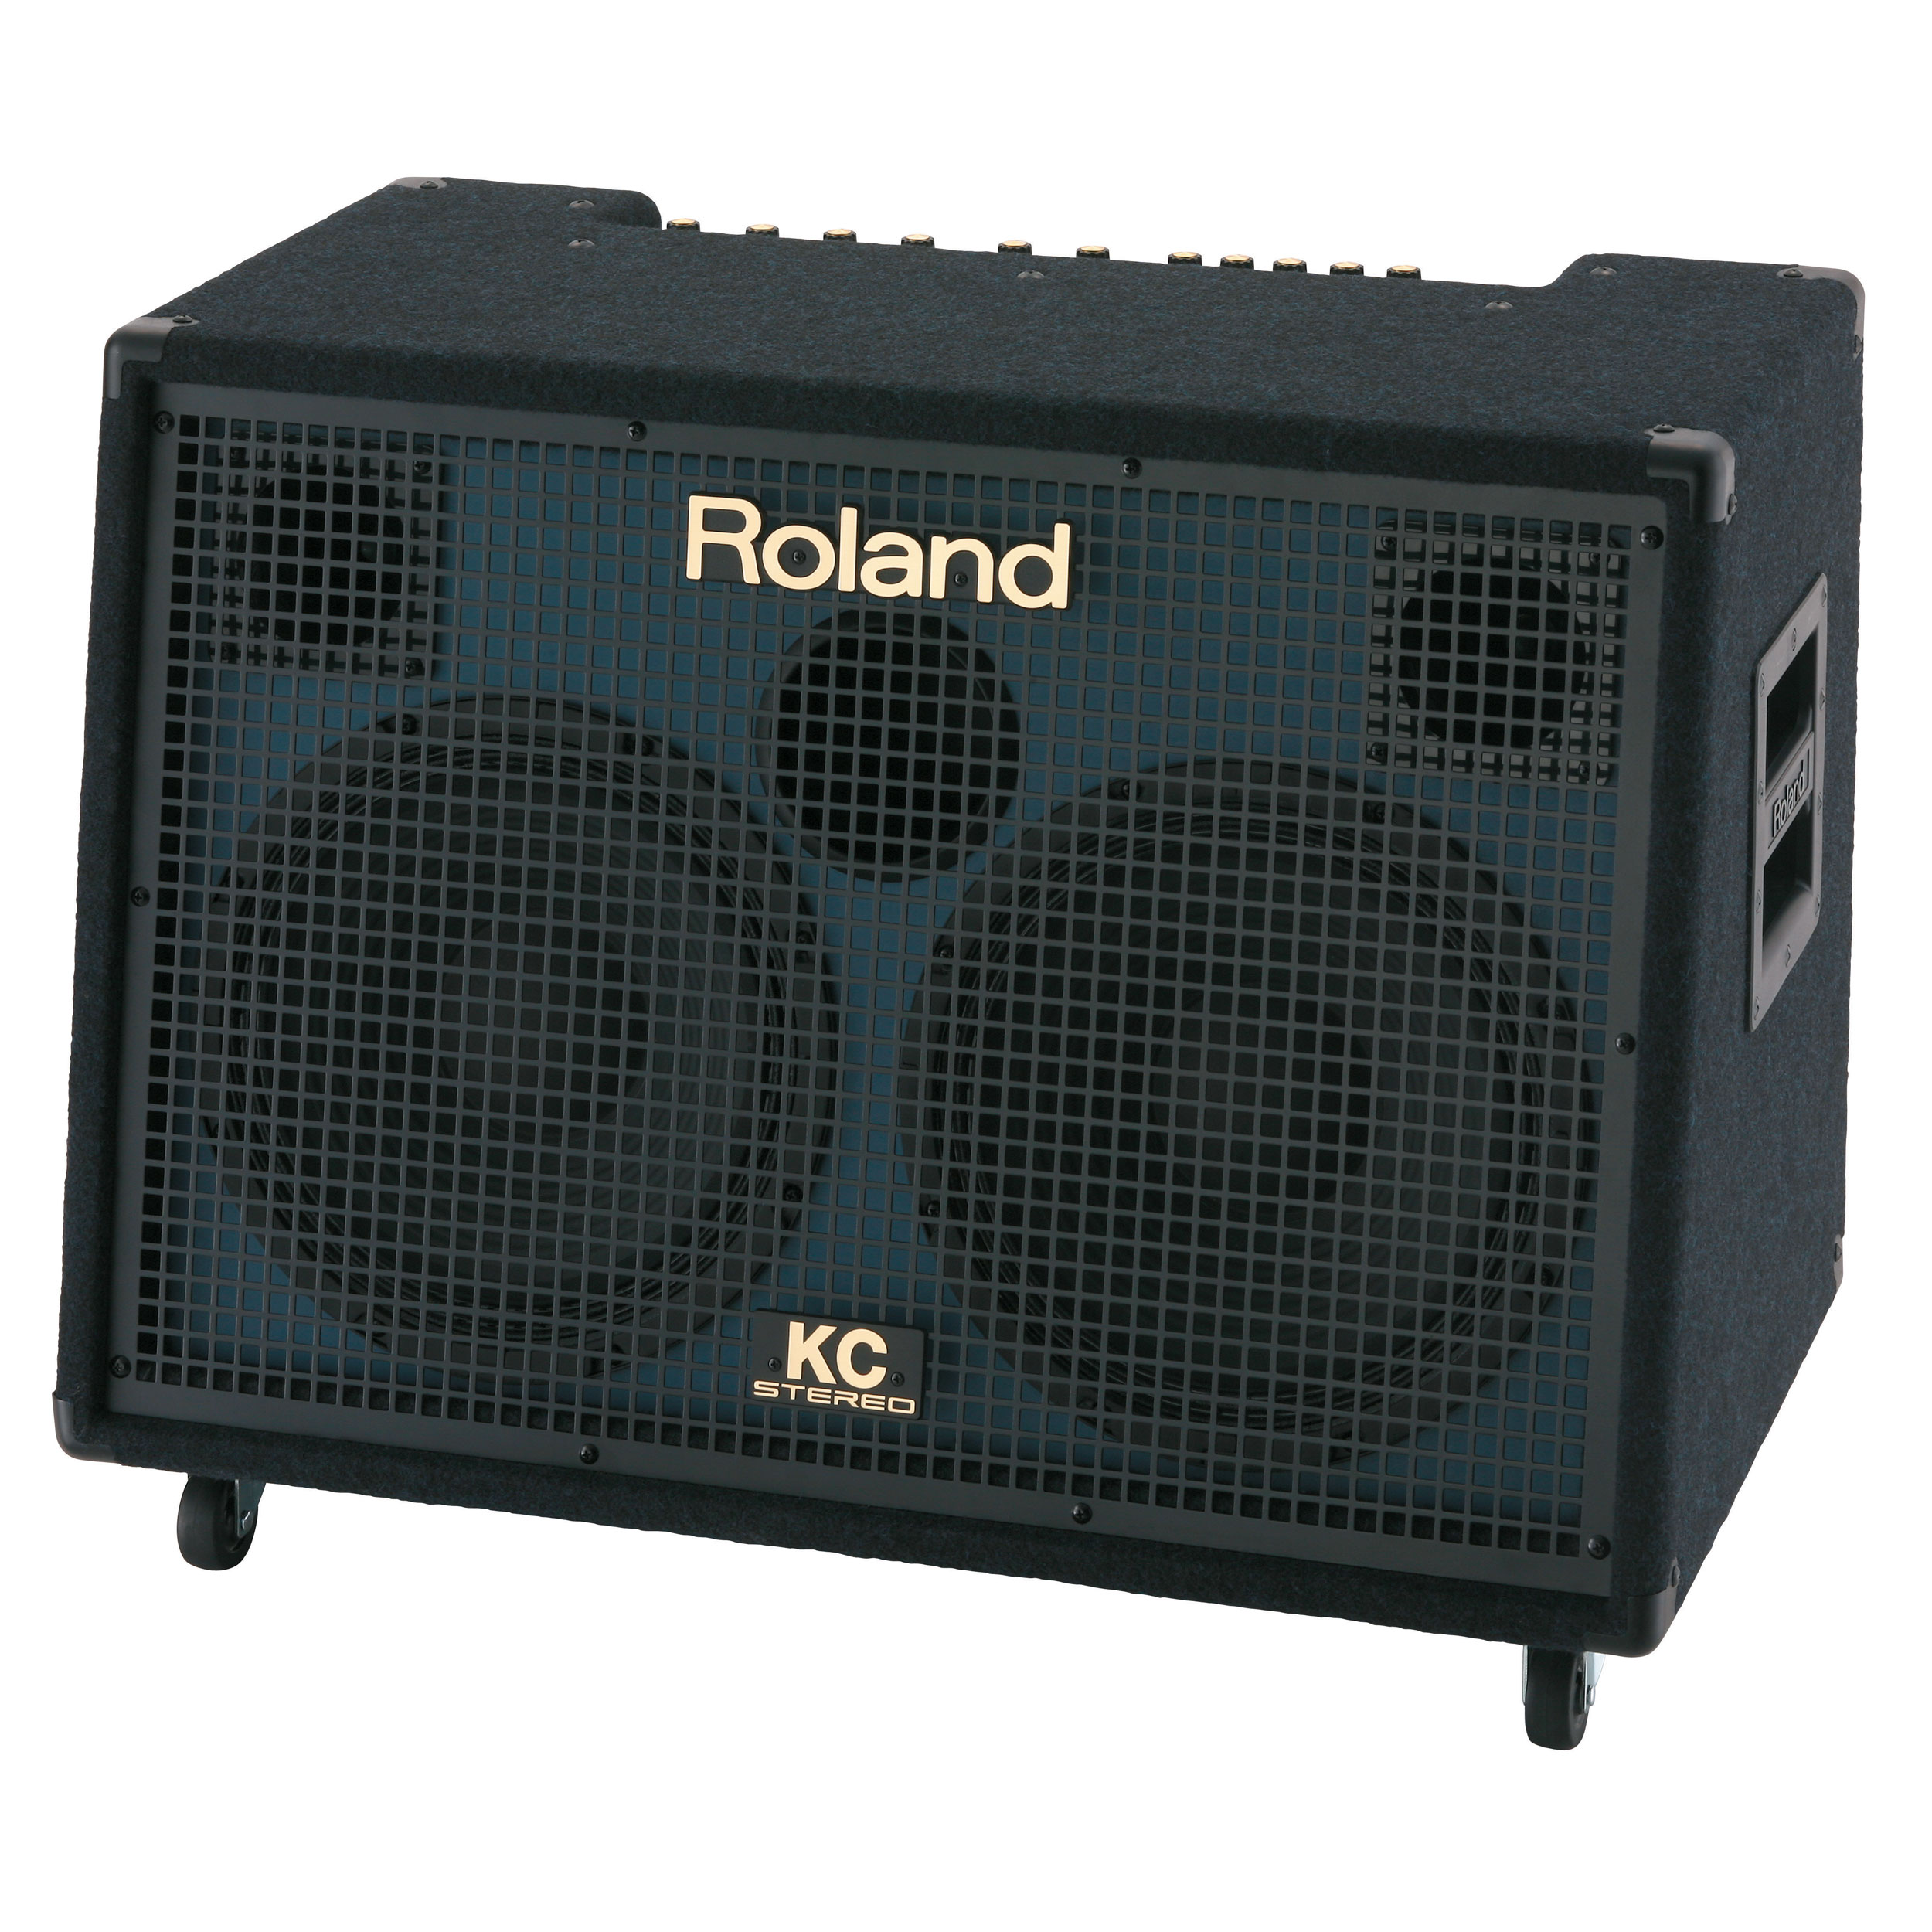 Roland KC-880 5-Channel 320W Mixing Keyboard Amplifier